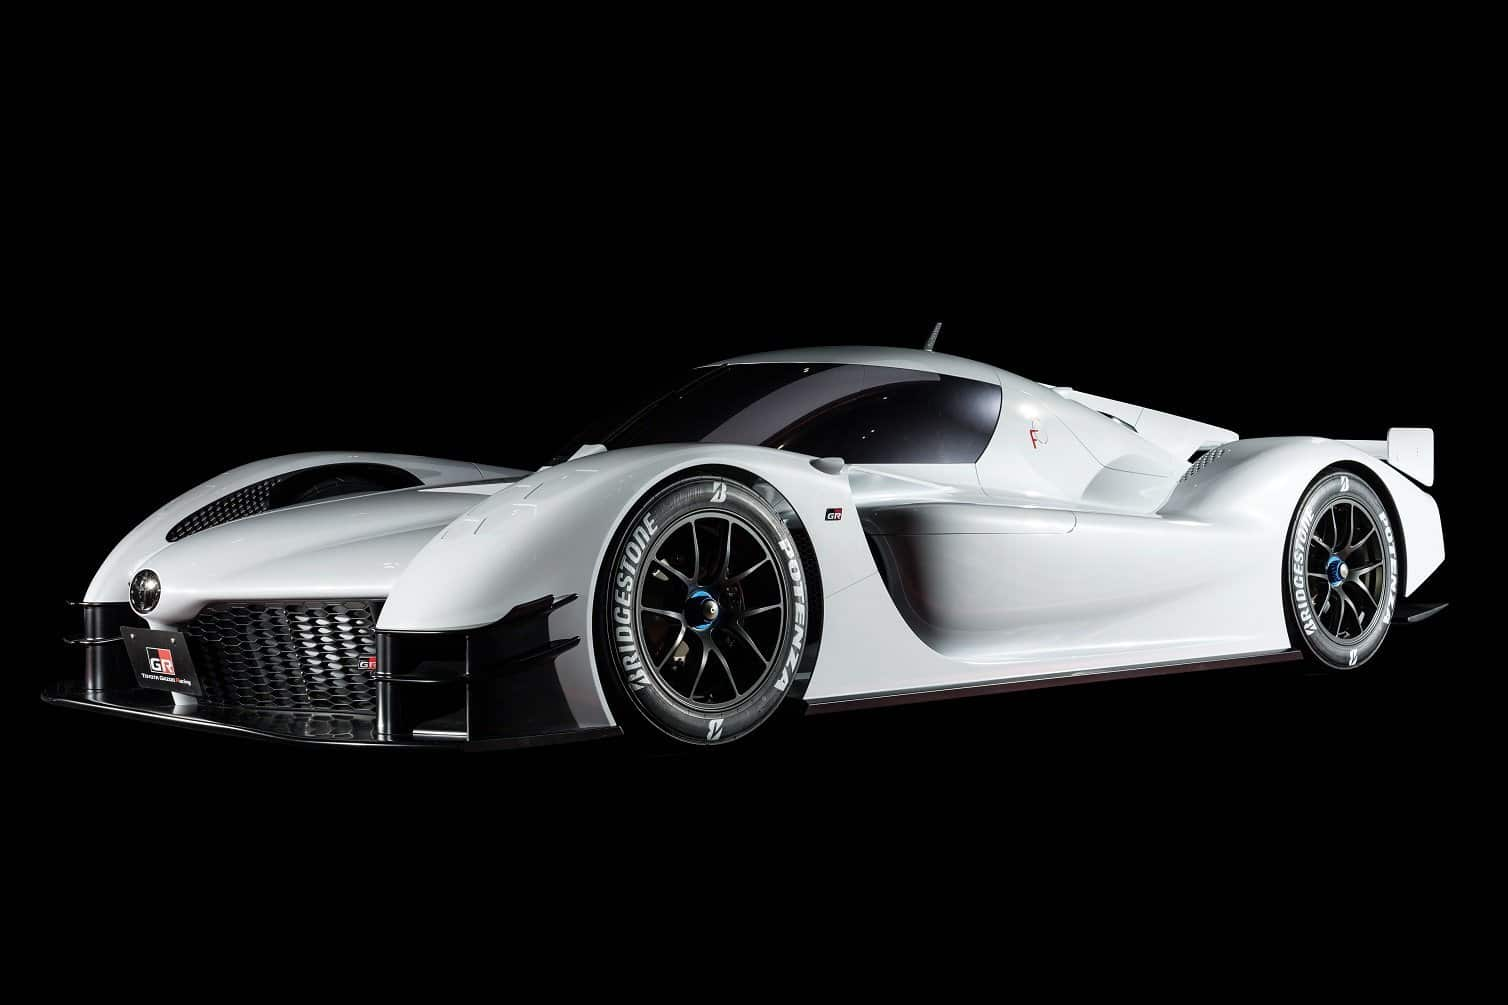 Toyota's made a Le Mans vehicle for the road